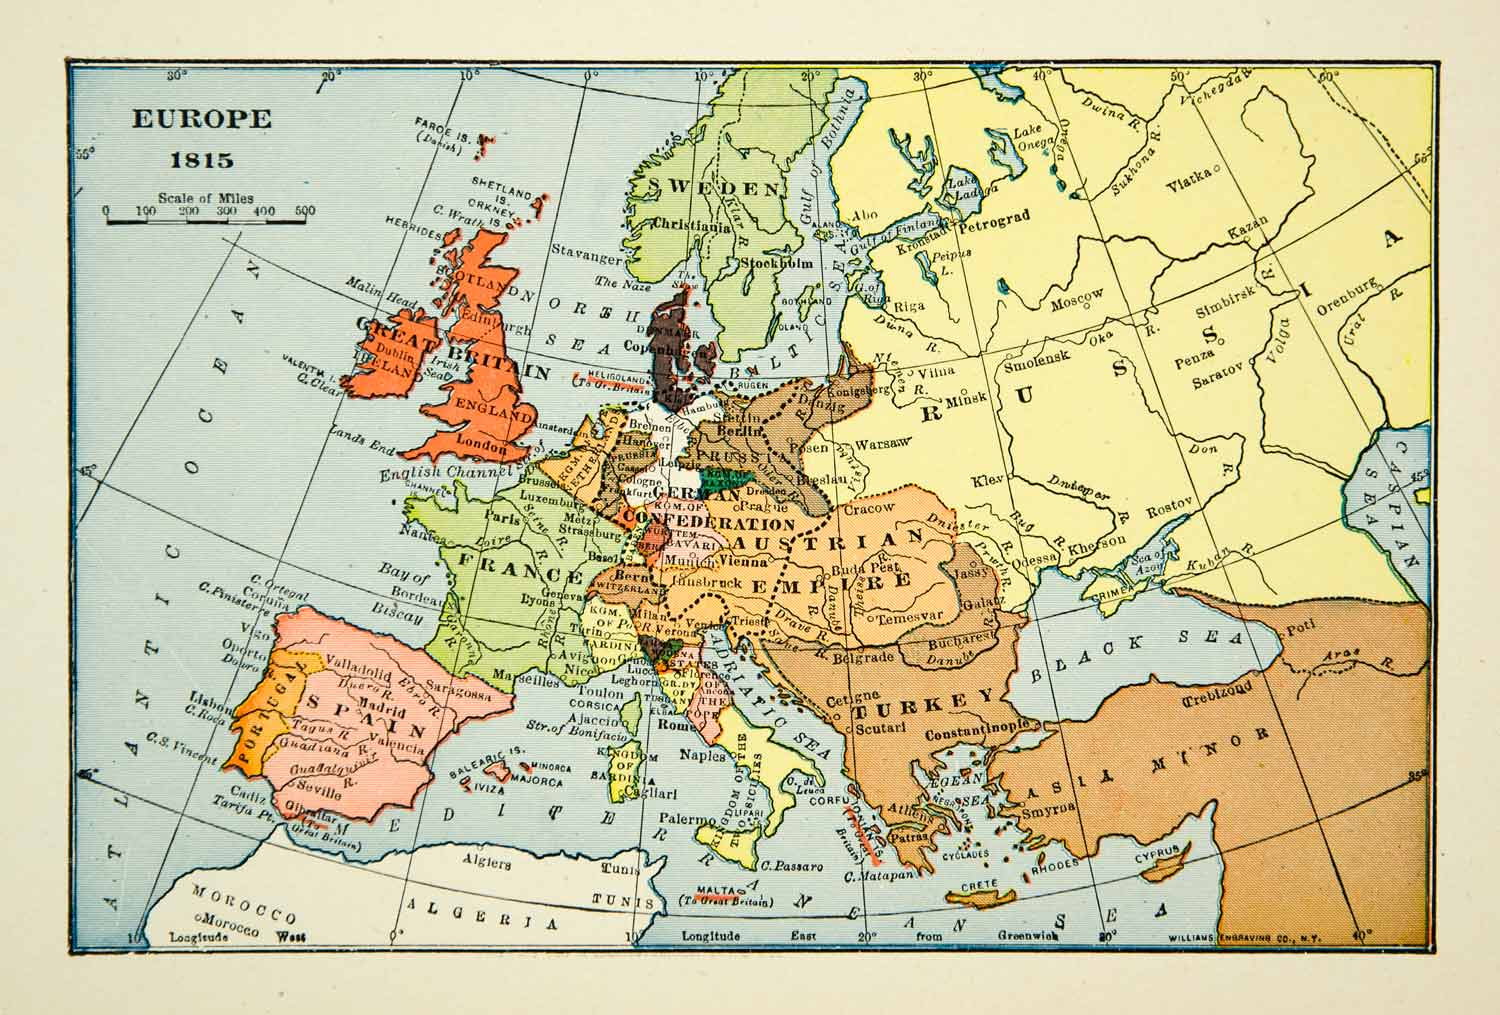 France On A Map Of Europe.1939 Print Map Europe Turkey Russia France 19th Century Great Britain Xena9